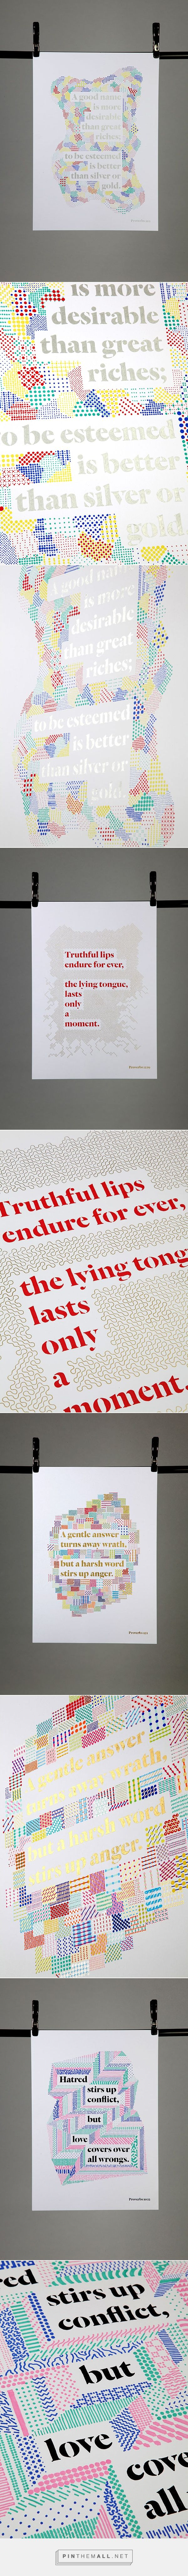 Illuminated Proverbs on Behance